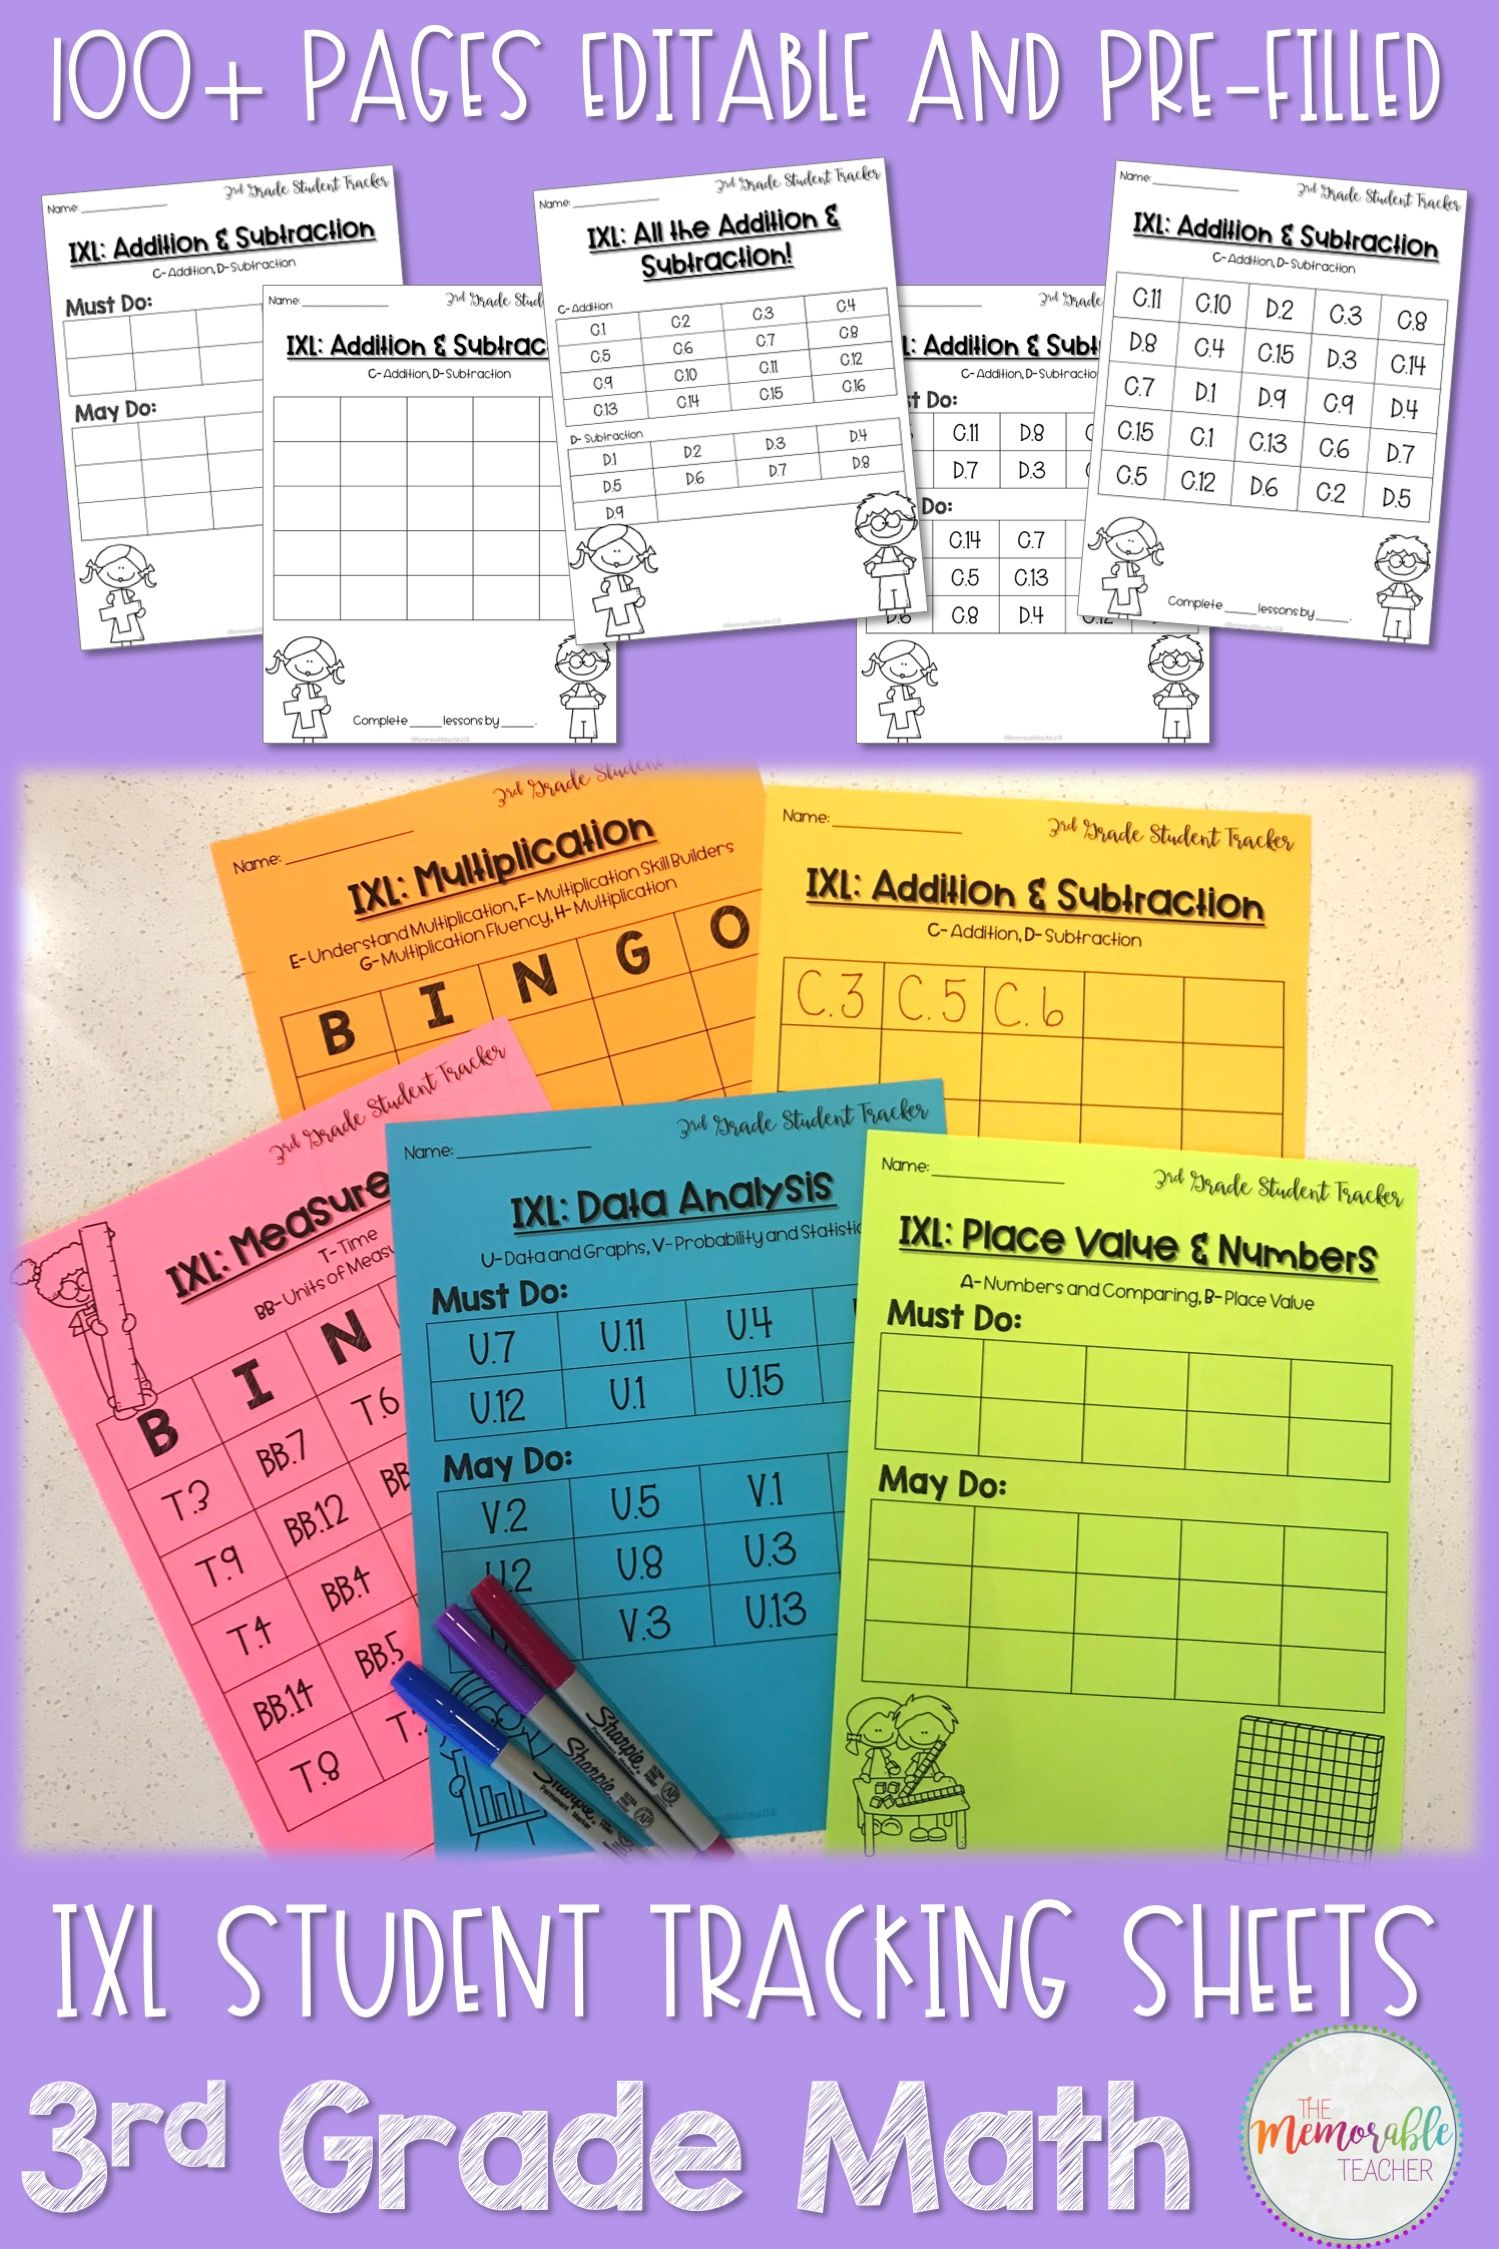 IXL Math Student Tracking Sheets 3rd Grade | Math skills, Data ...